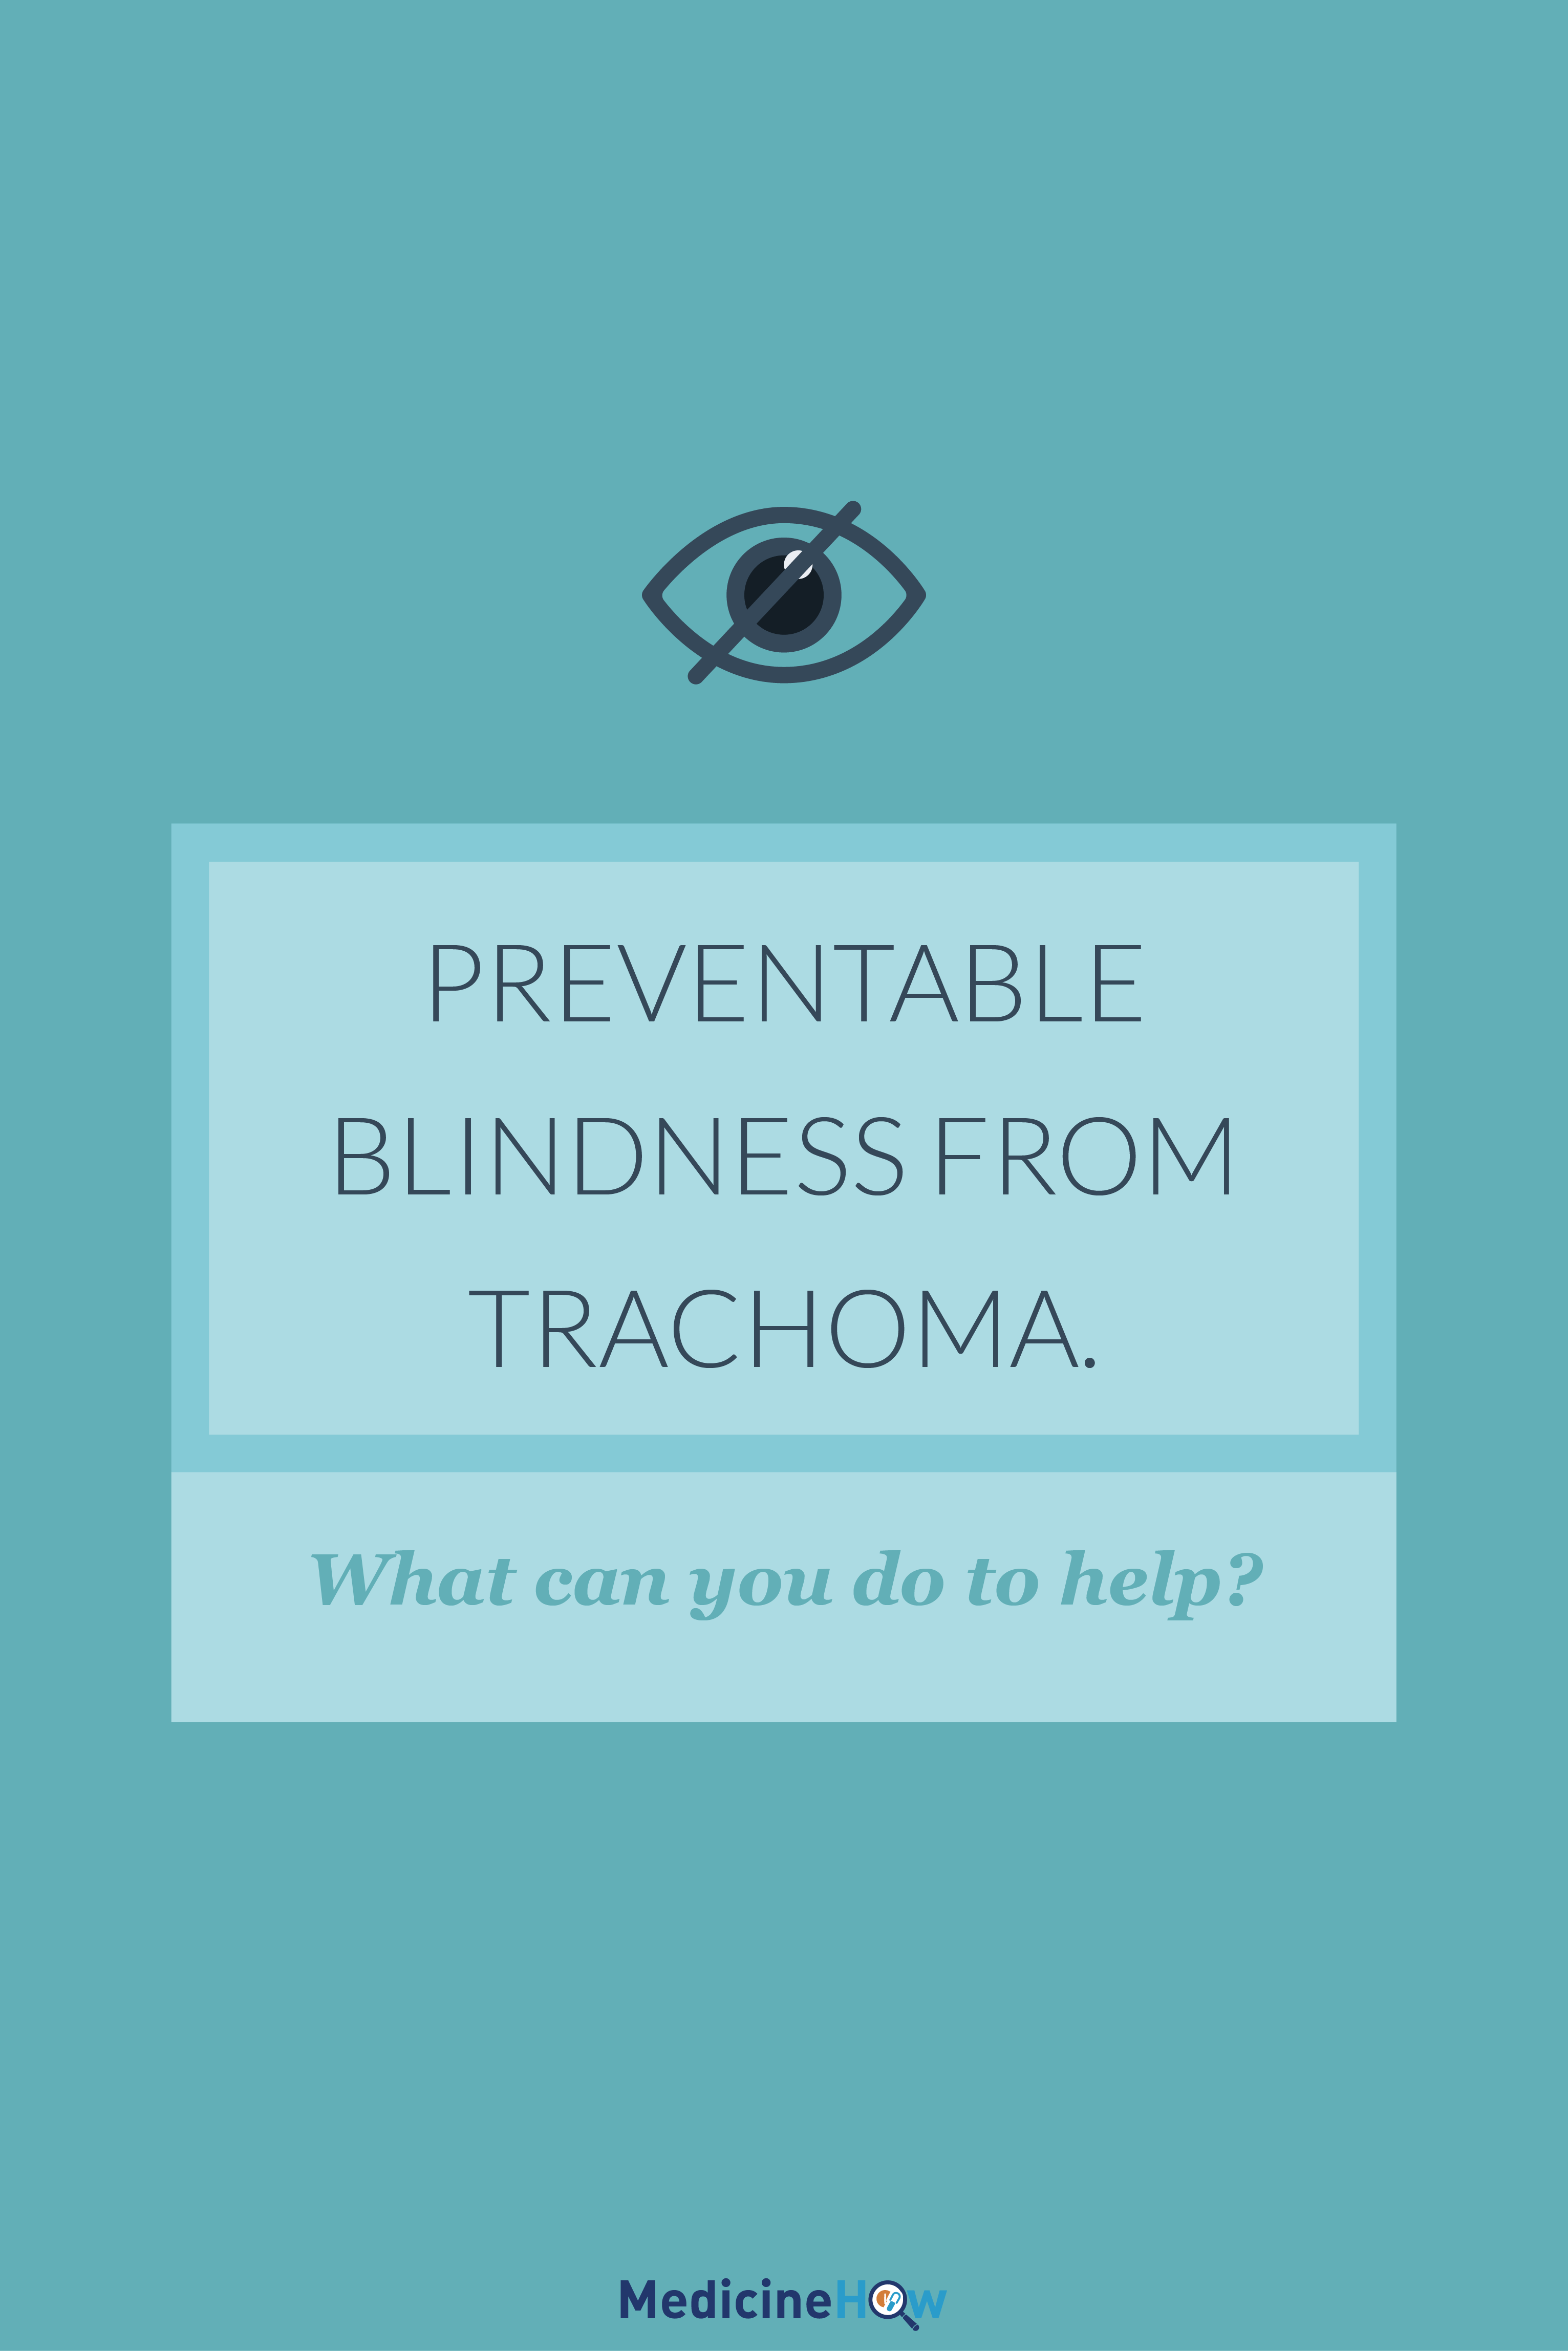 Preventable Blindness From Trachoma. What can you do to help?